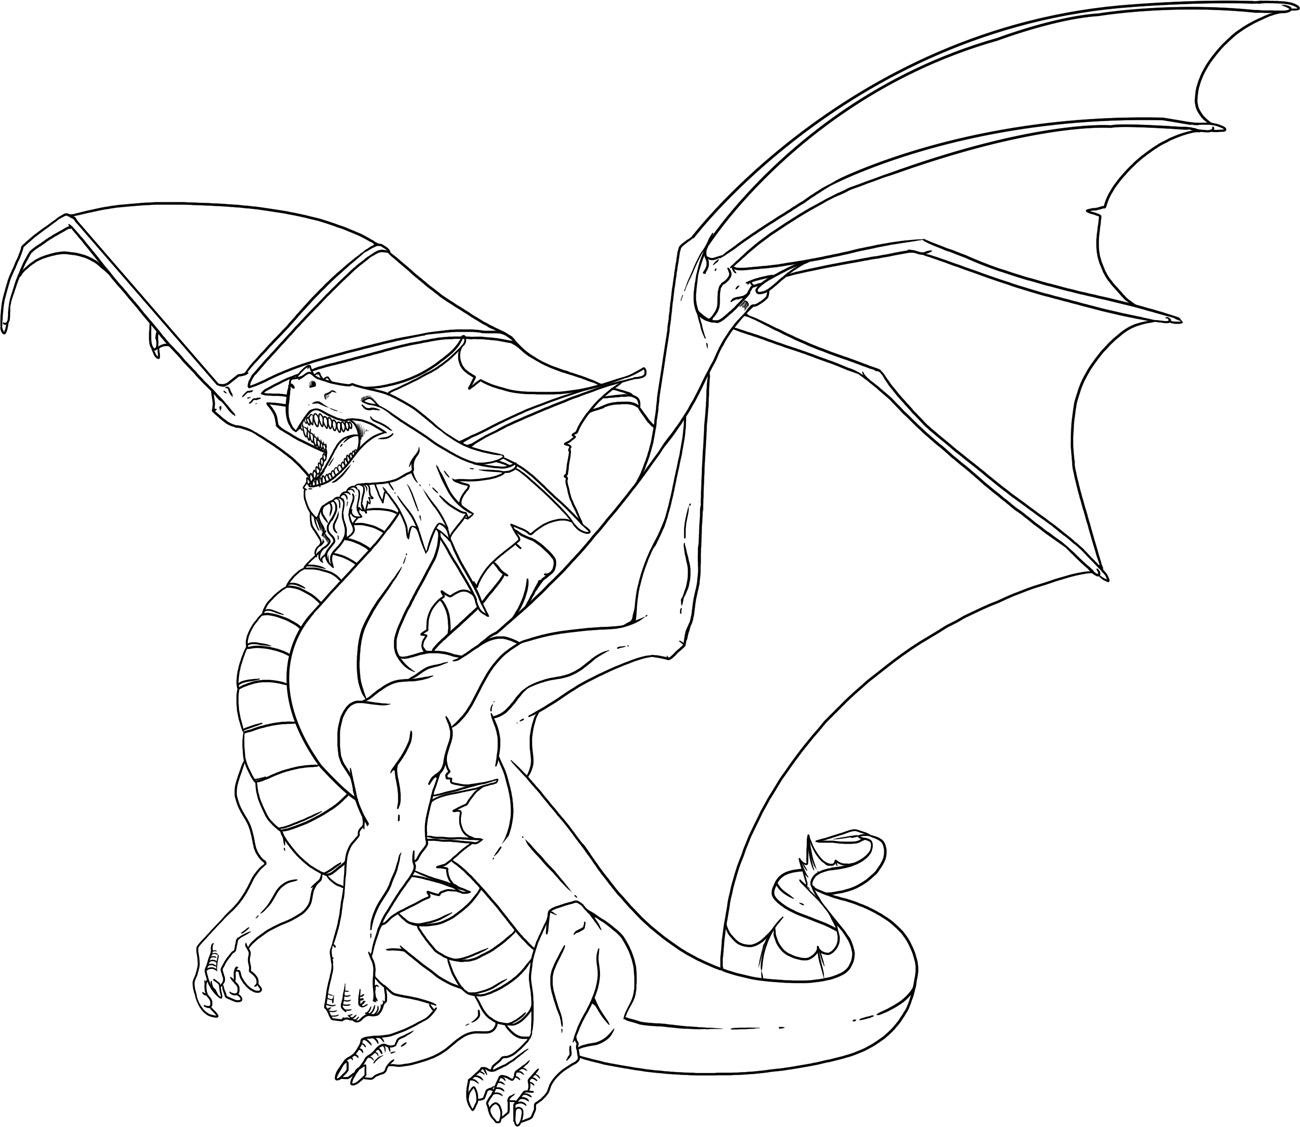 Printable-Dragon-Coloring-Pages.jpg